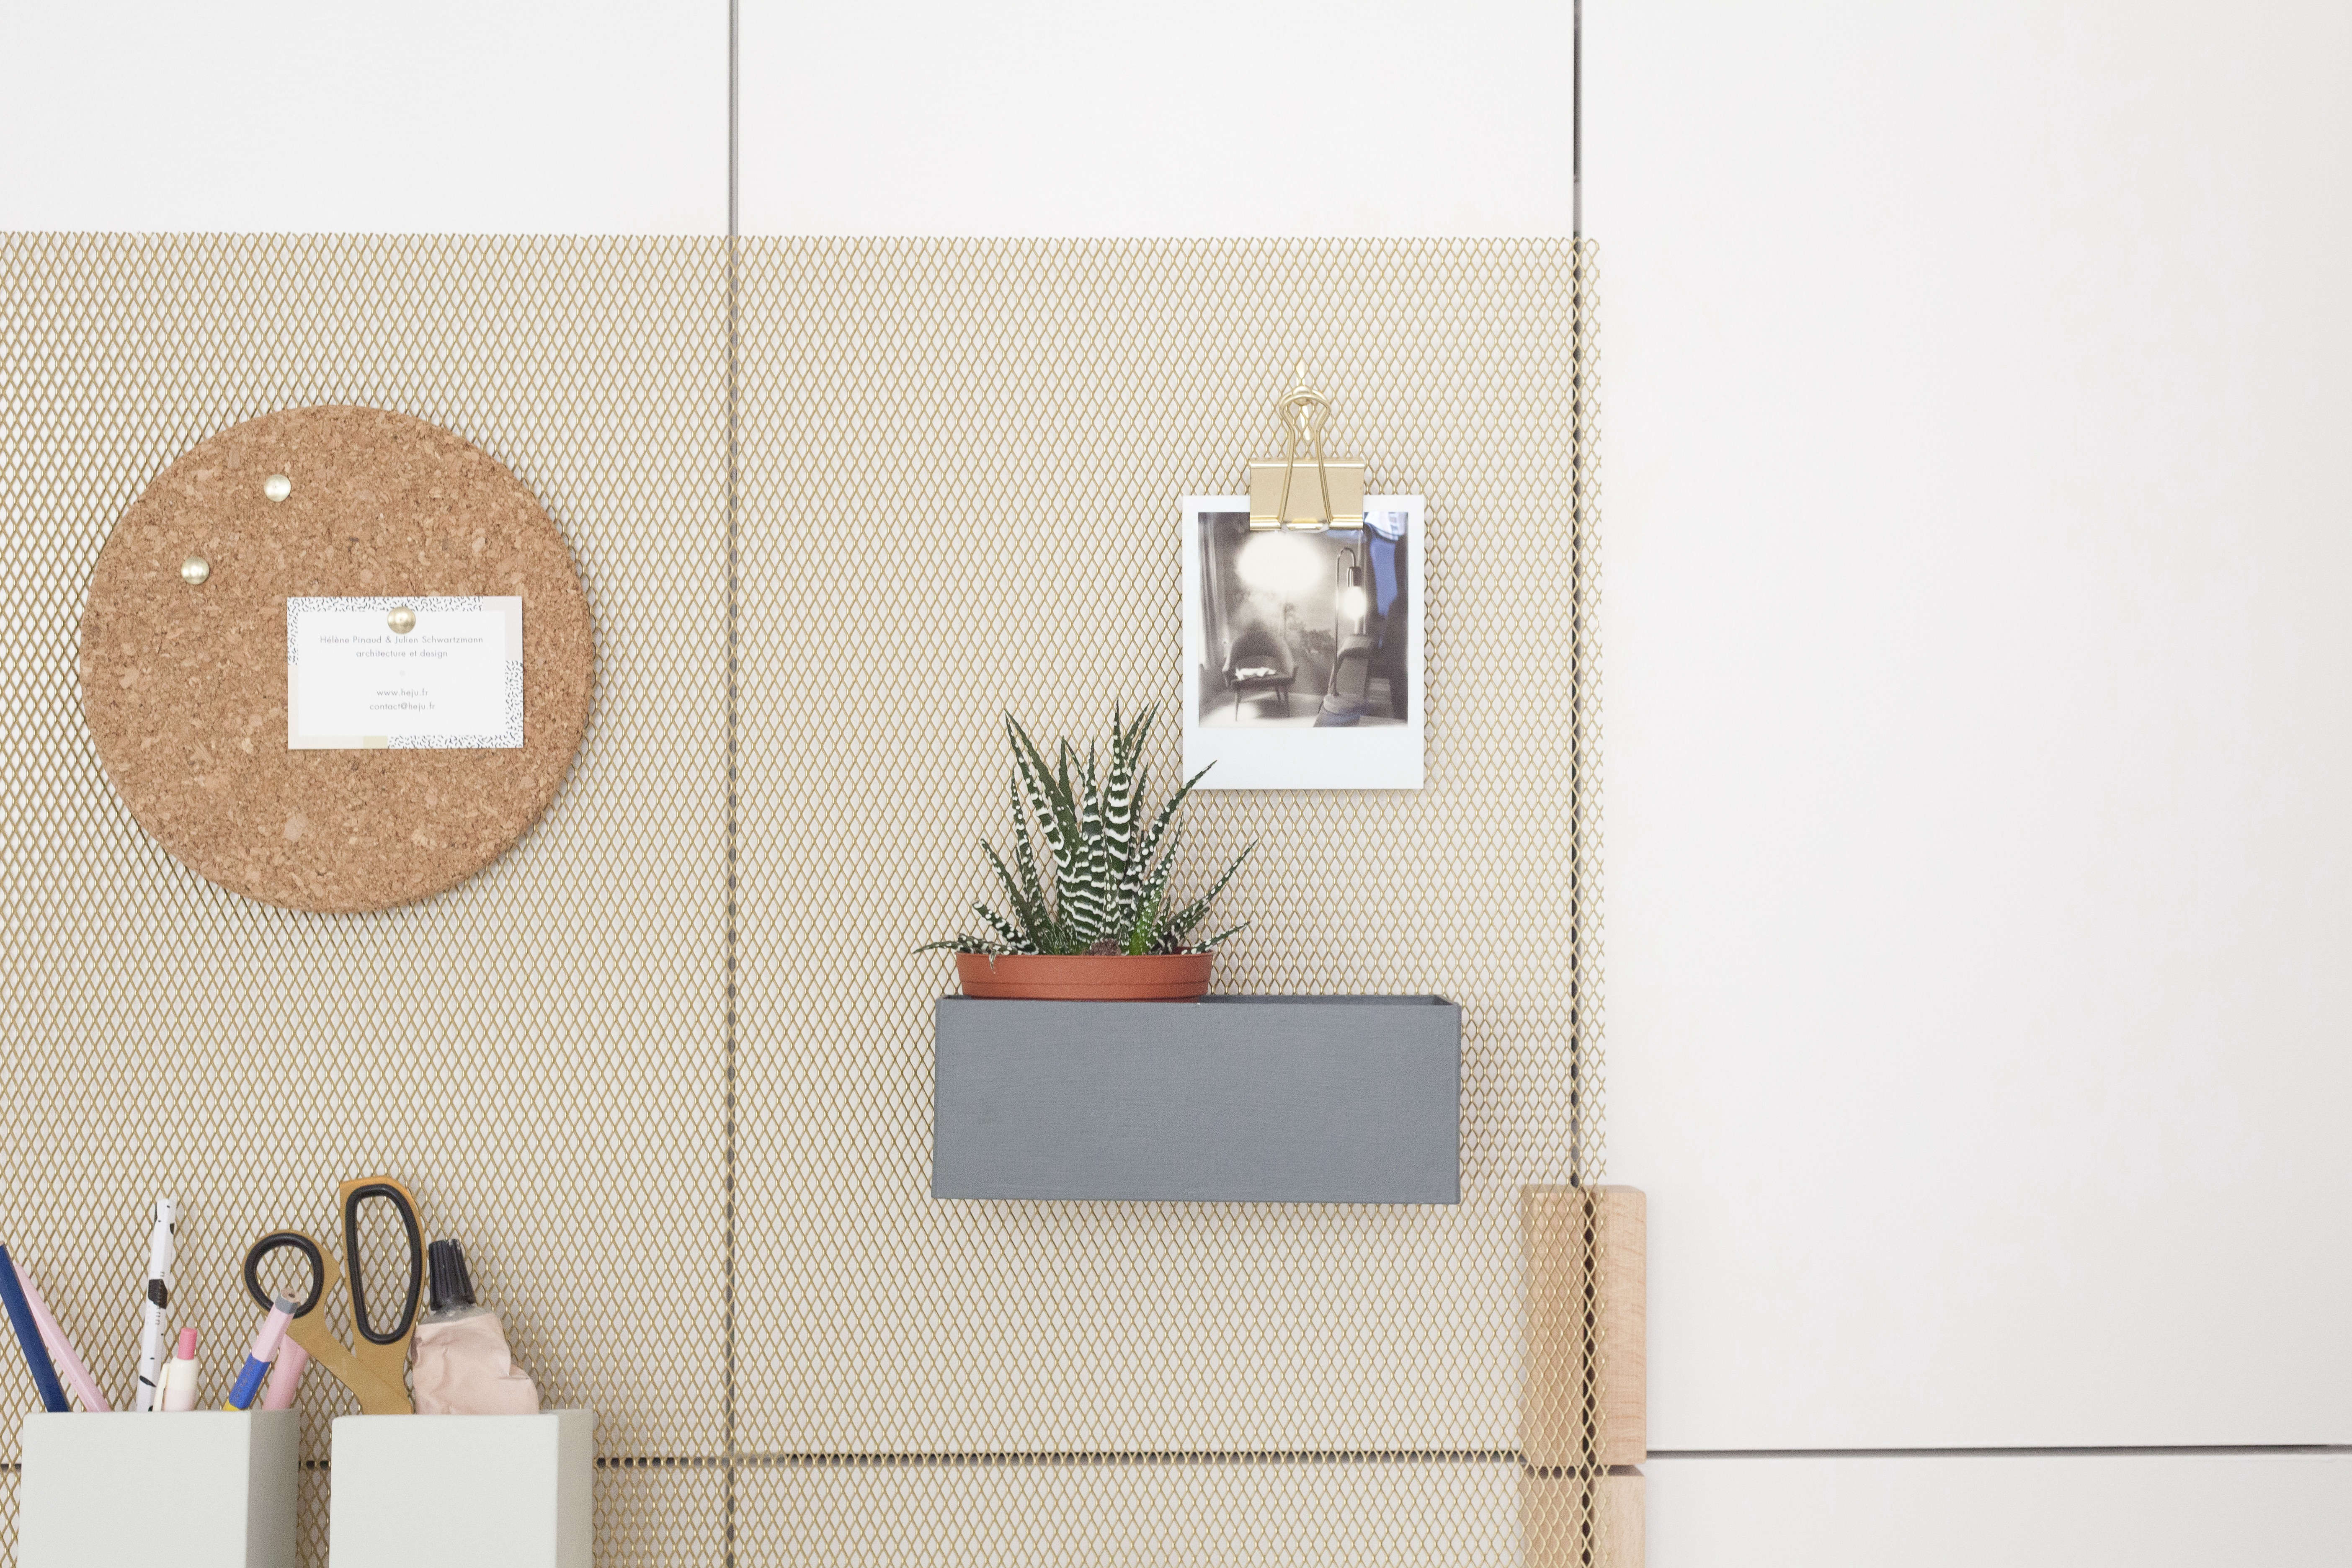 Detail of Heju's DIY metal wall organizer for the office and entry. Designed by 25-year-old Paris architects Hélène Pinaud and Julien Schwartzmann.